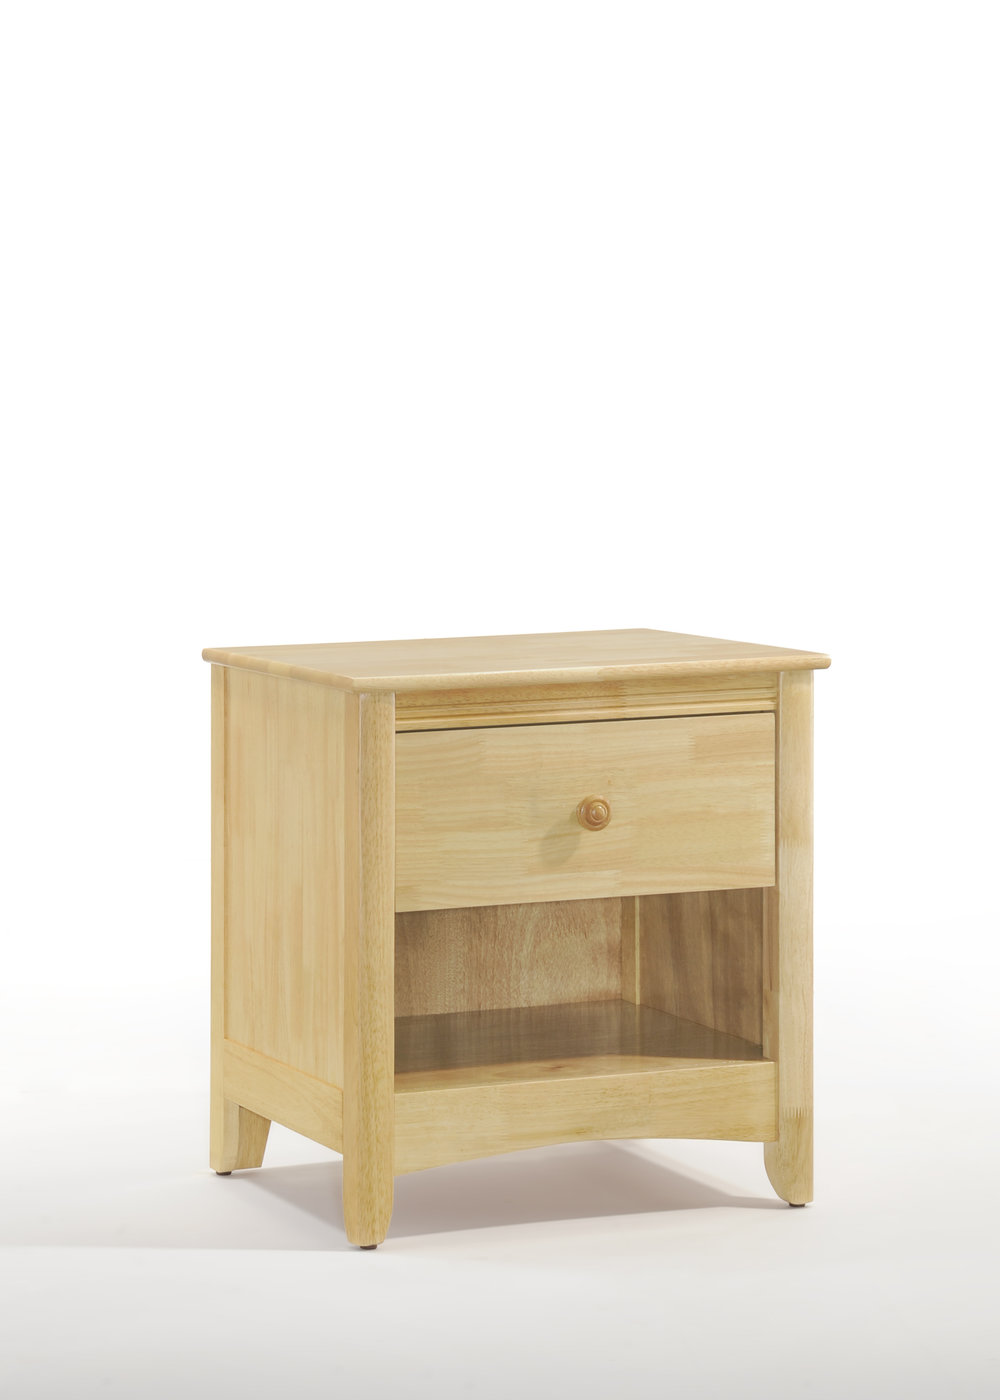 Secrets Nightstand Natural Wood Knobs.jpg